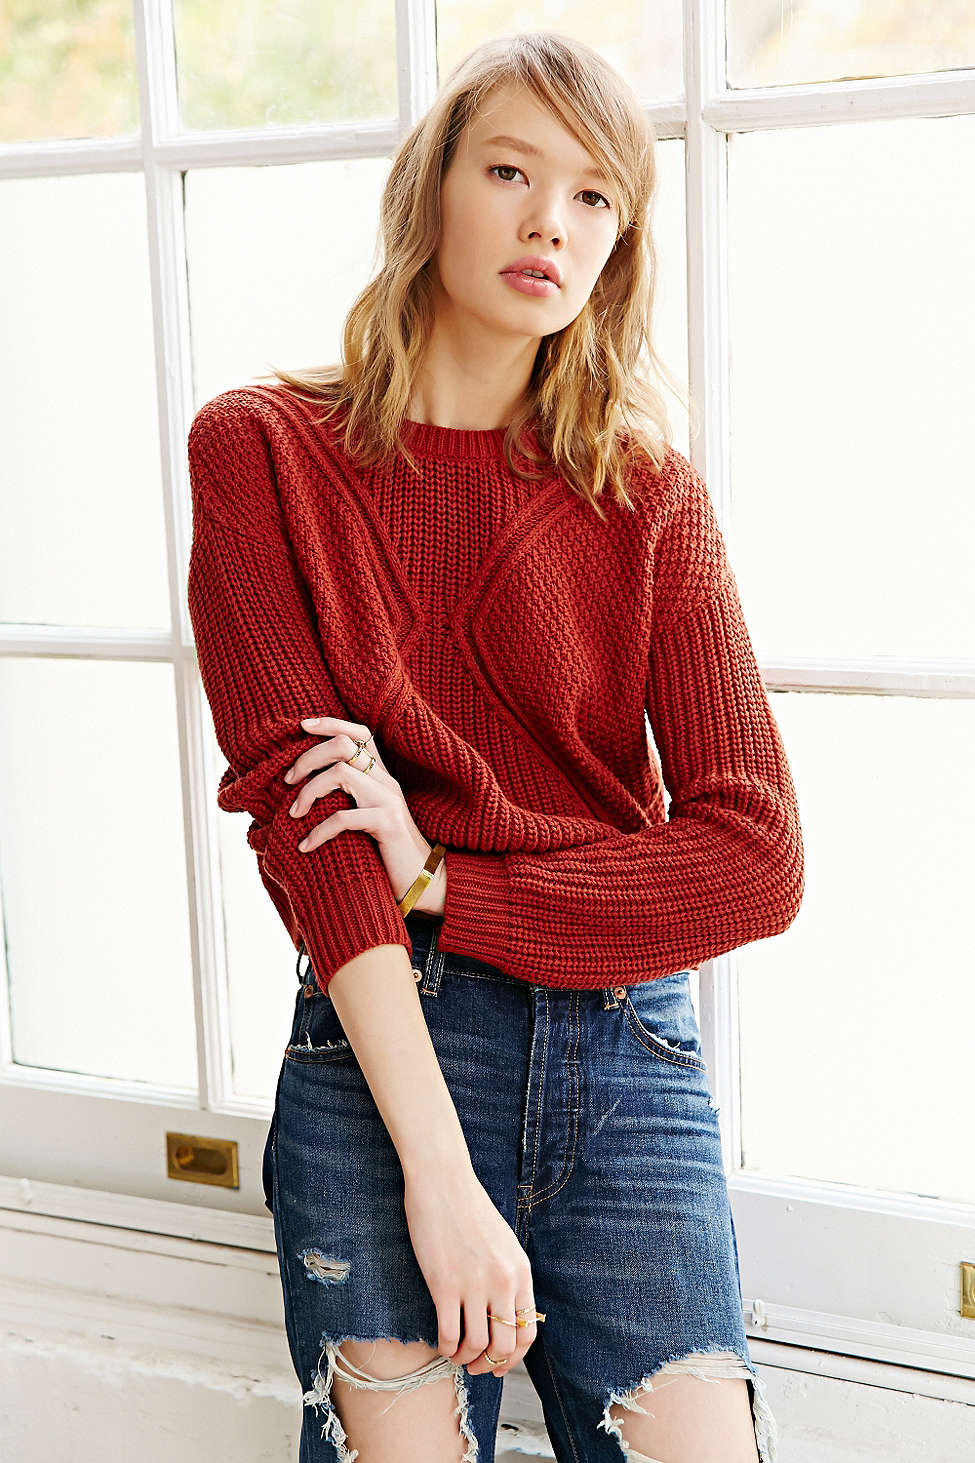 From $29 Select Women's Sweaters @ Urban Outfitters